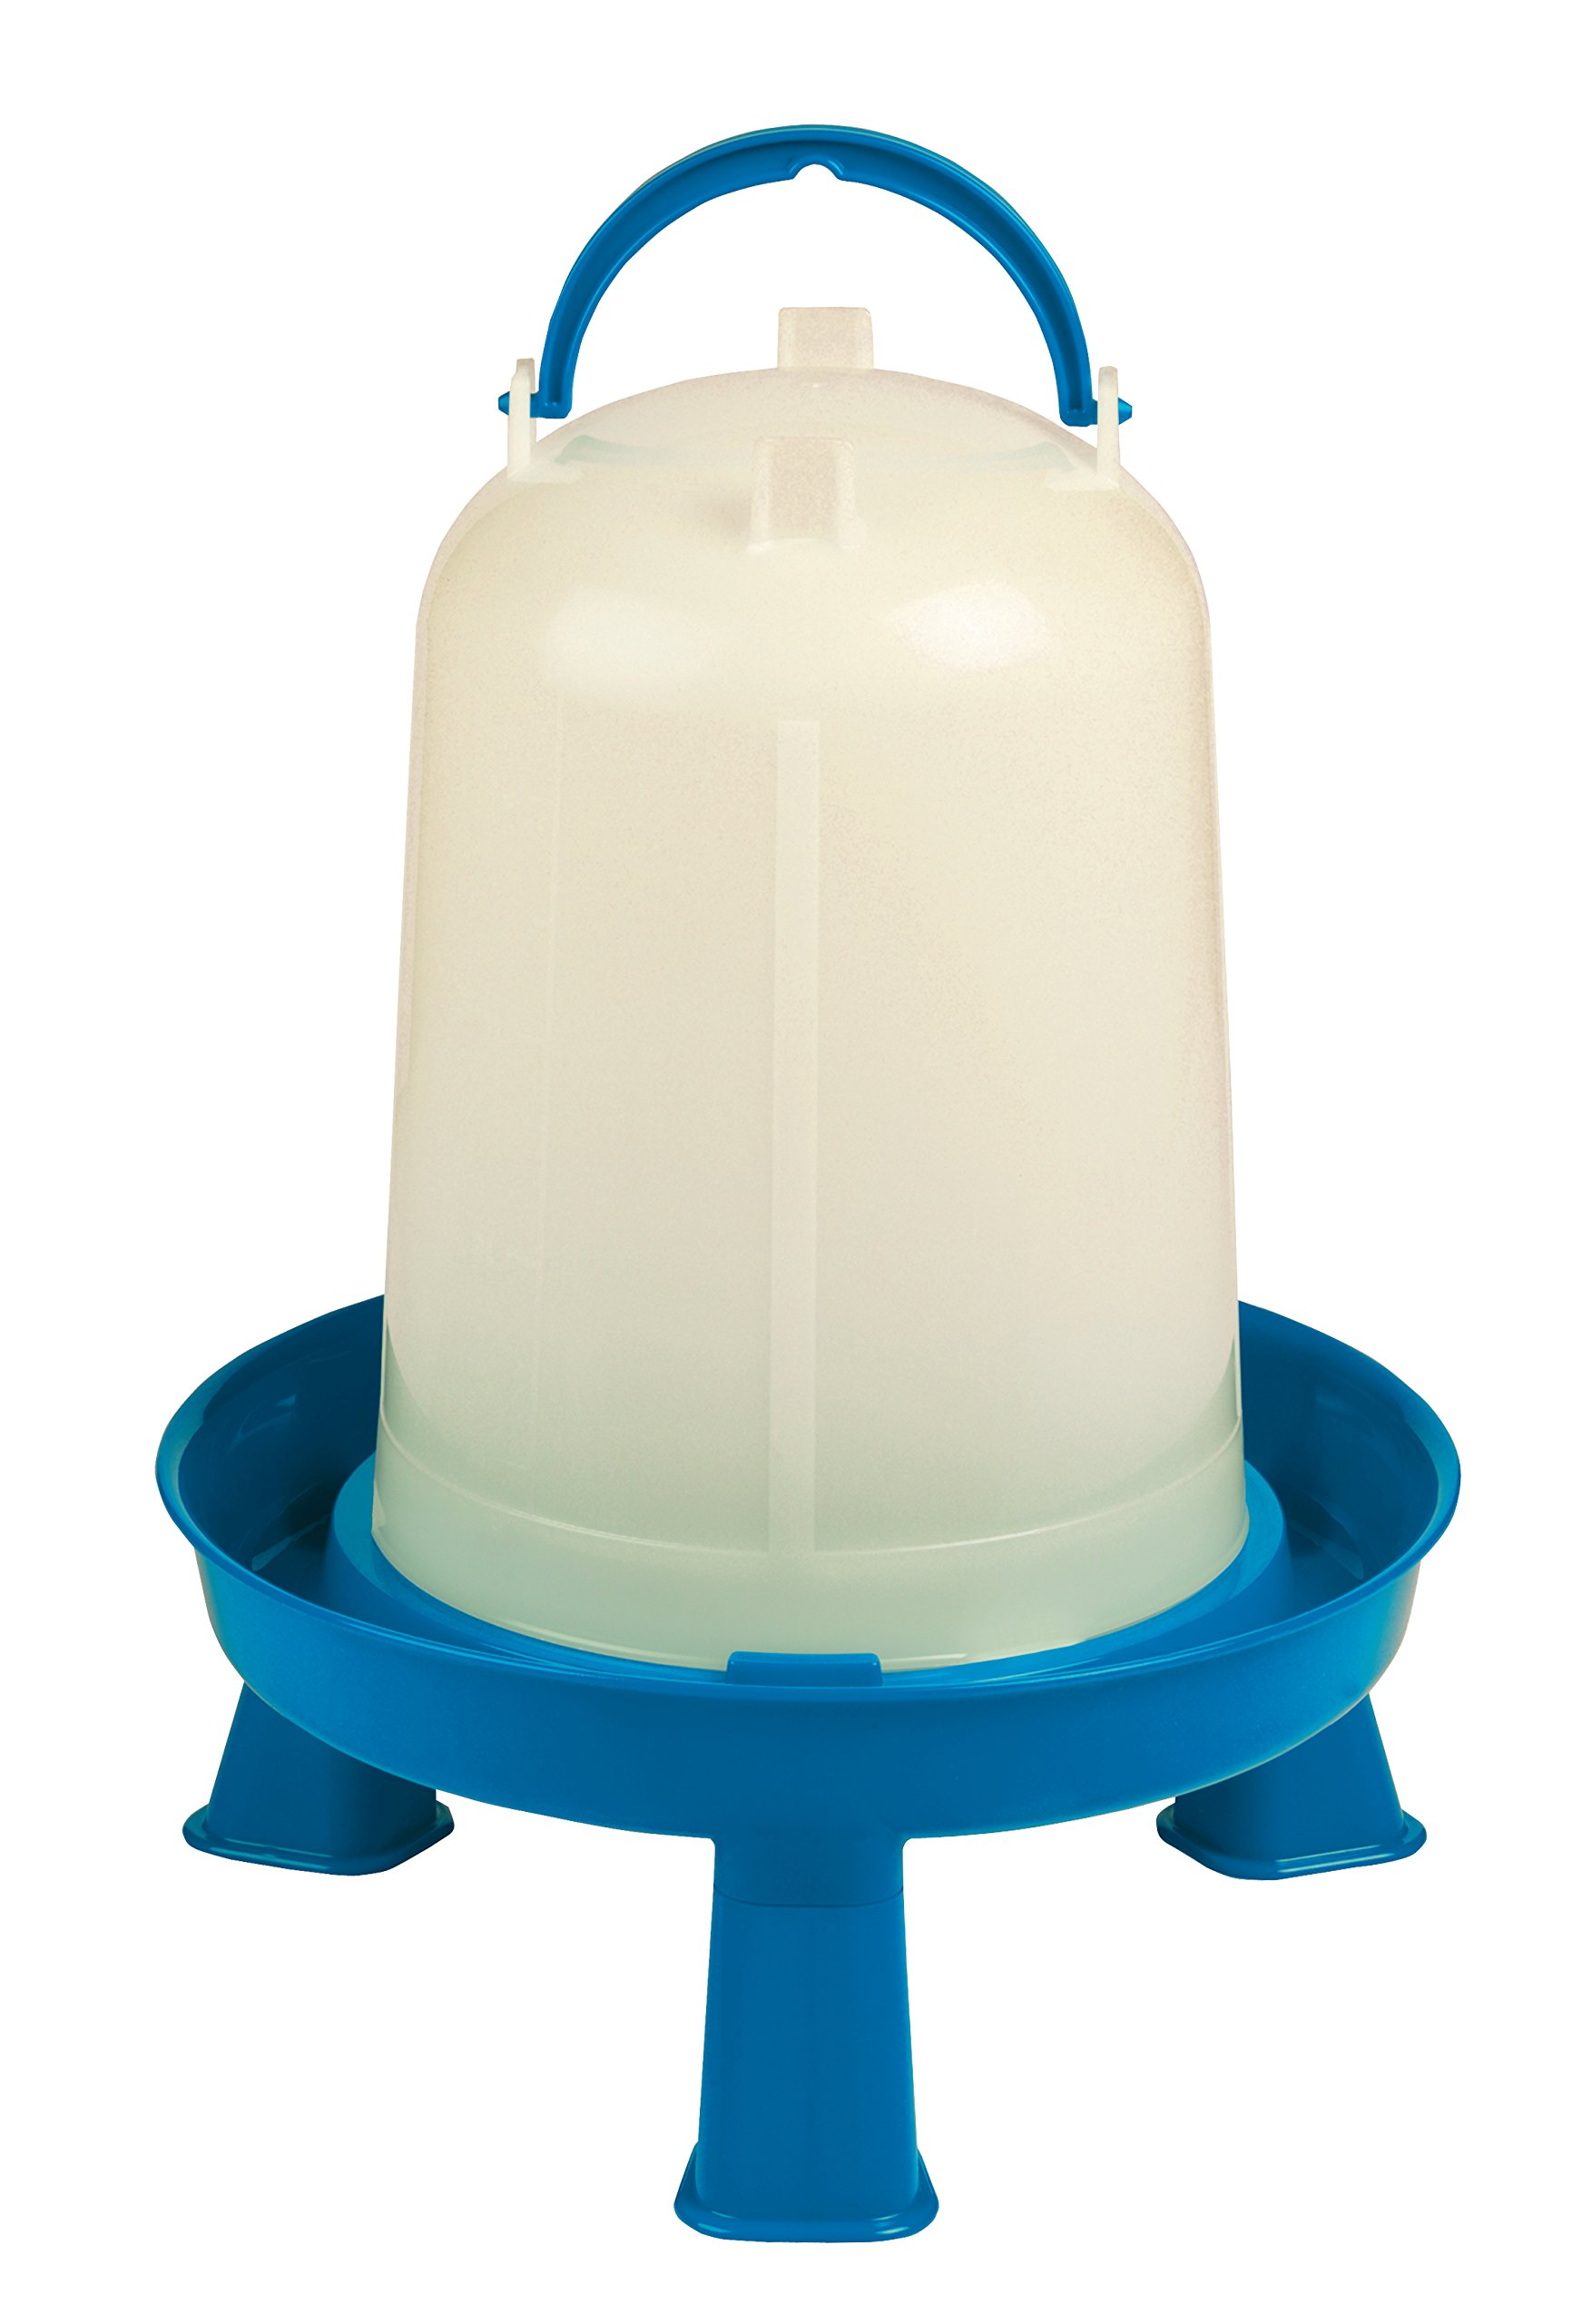 Double-Tuf DT9874 Poultry 1 Gallon Waterer with Removable Legs by Double-Tuf